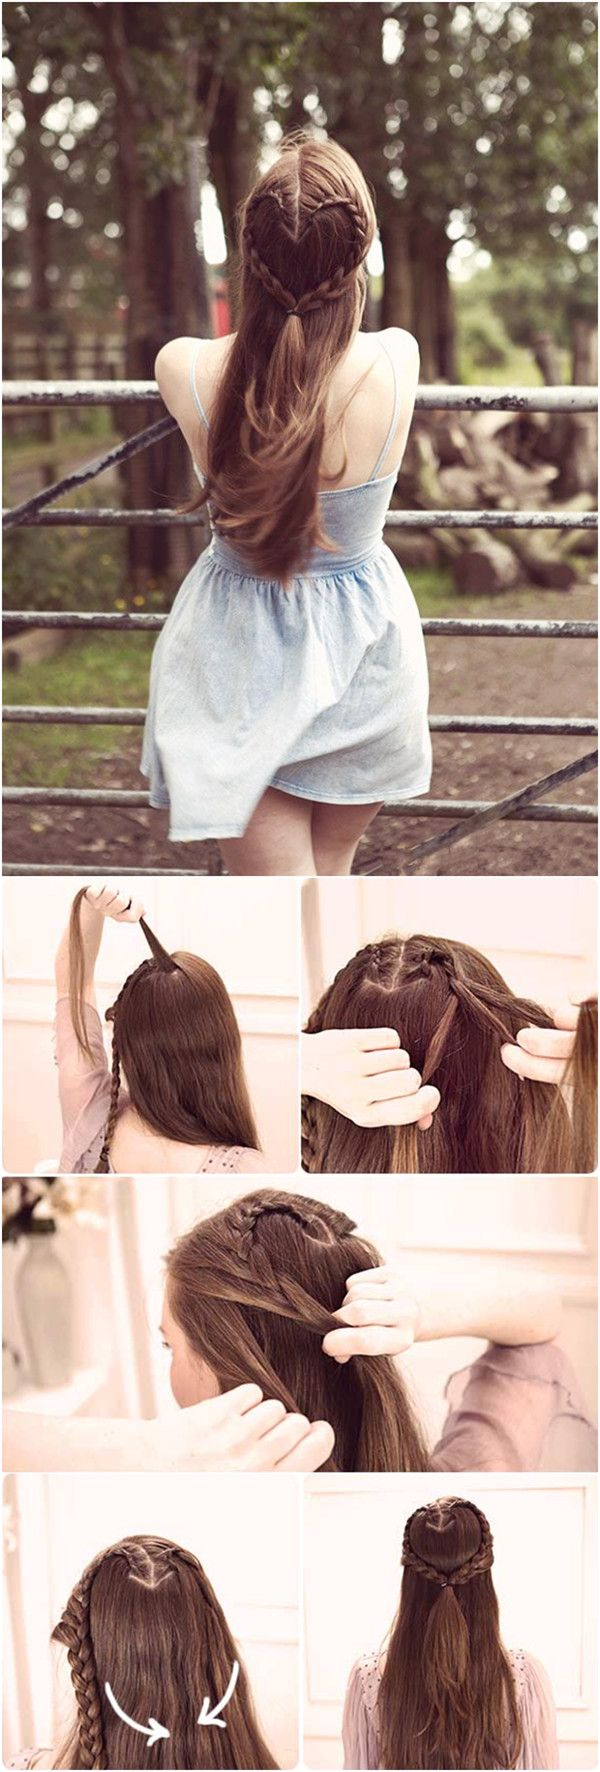 Hair Tutorial - How to do a cute heart braid hair style